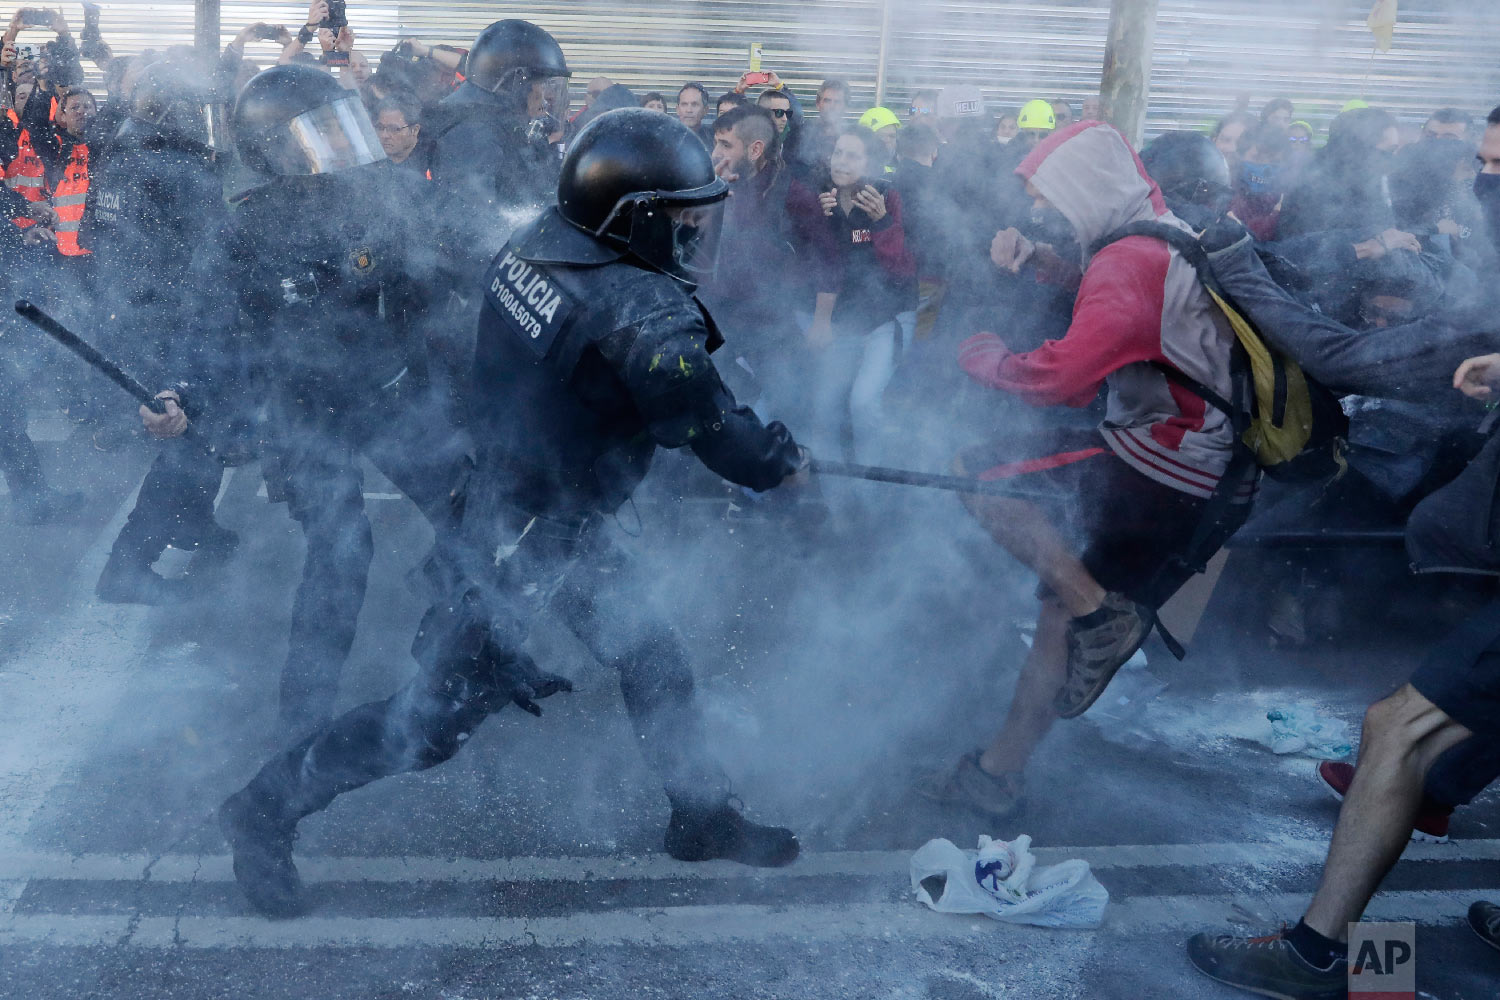 Police charge against protesters during a demonstration by Committees for the Defense of the Republic in Barcelona, Spain, on Nov. 10, 2018. The grassroots group organizes protests in Catalonia to press for their demand for independence. (AP Photo/Manu Fernandez)